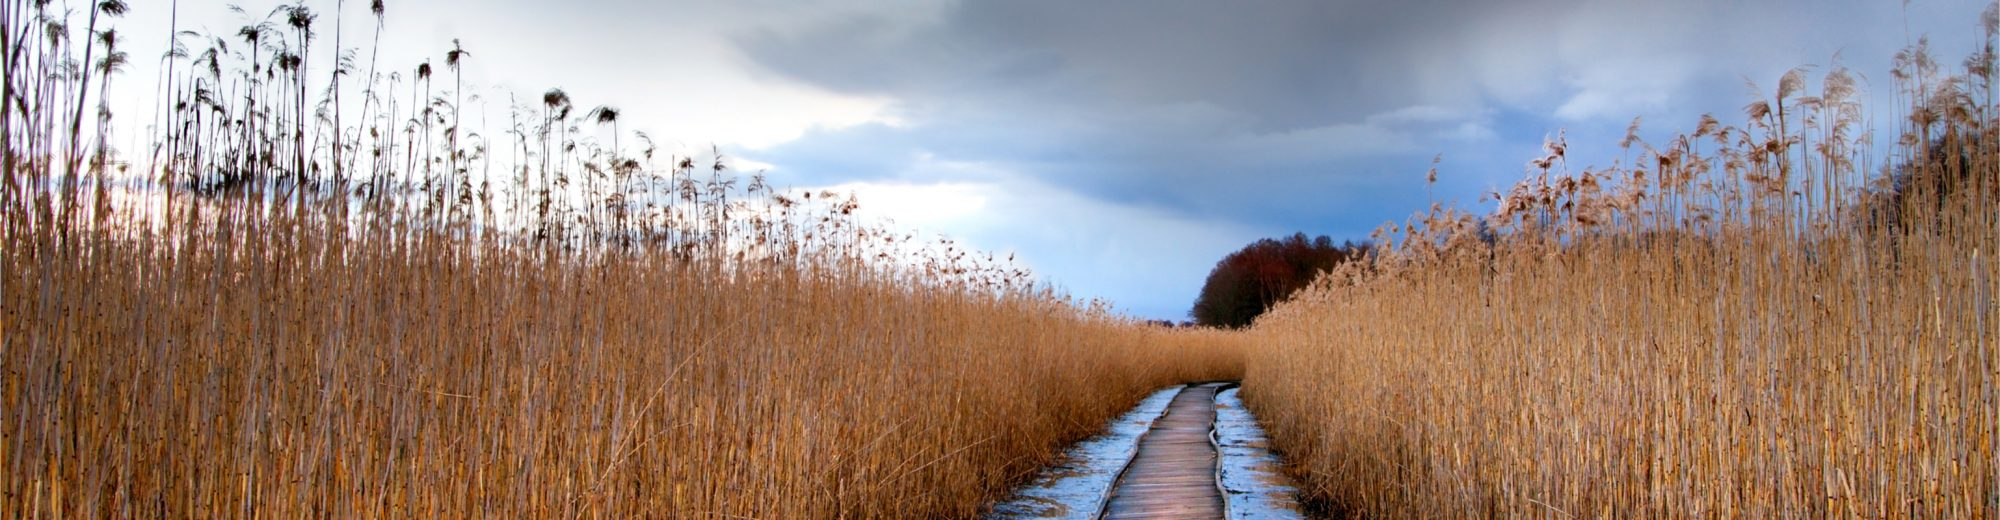 Pathway through marshes